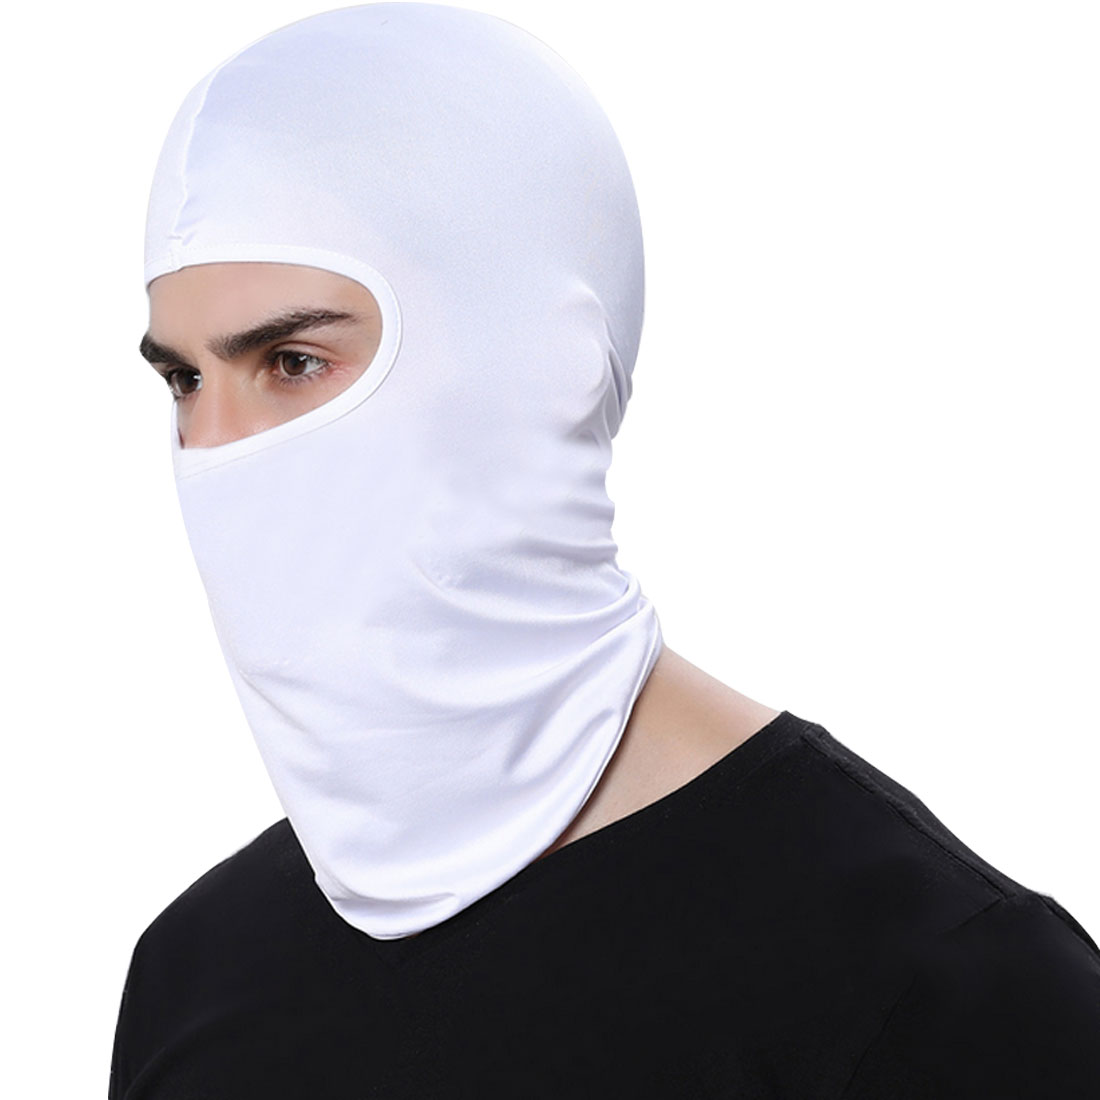 Apparel Accessories Men's Masks Hot Sele Motorcycle Face Mask Cycling Ski Neck Protecting Outdoor Balaclava Full Face Mask Ultra Thin Breathable Windproof Mask